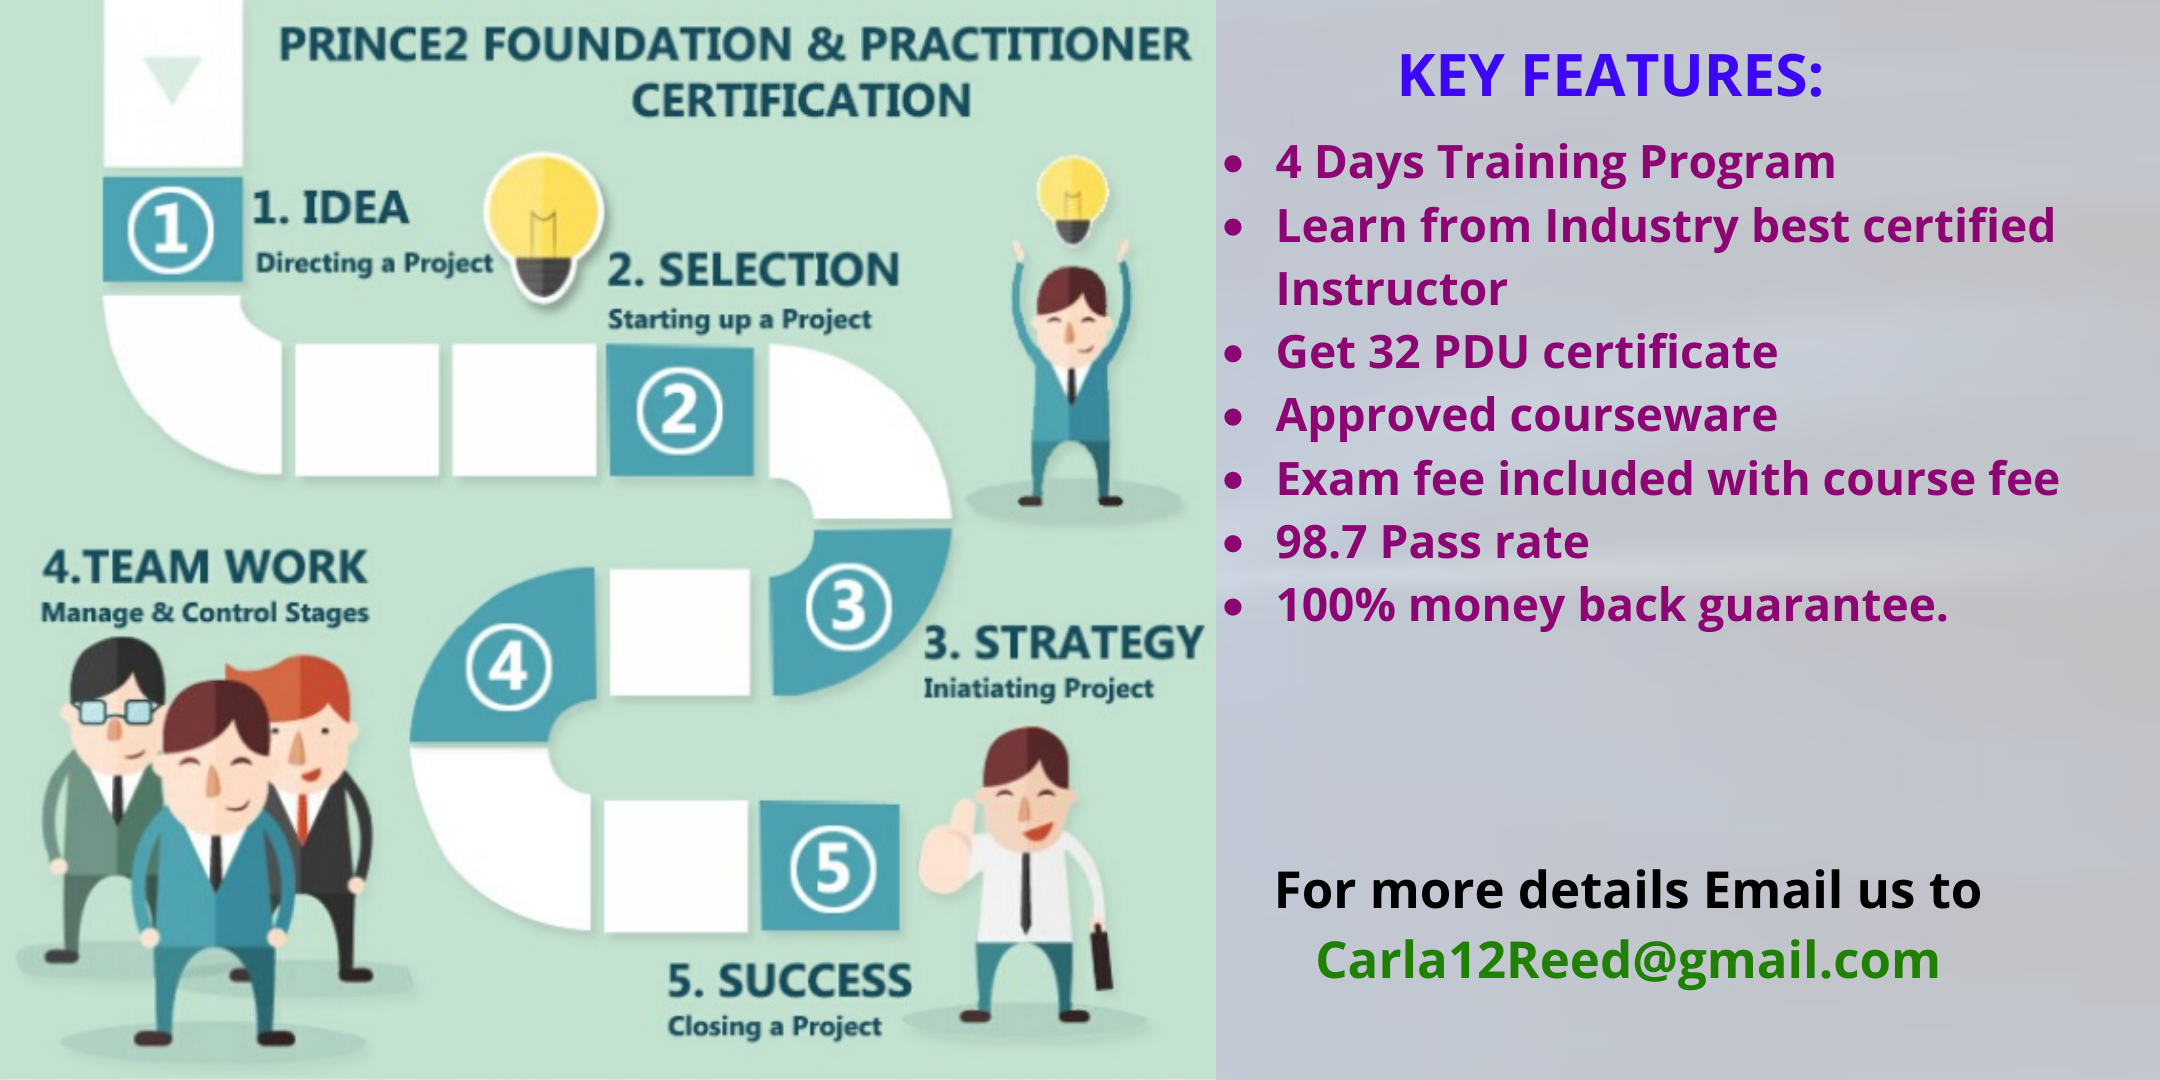 PRINCE2 Foundation And Practitioner Training In Reading, England